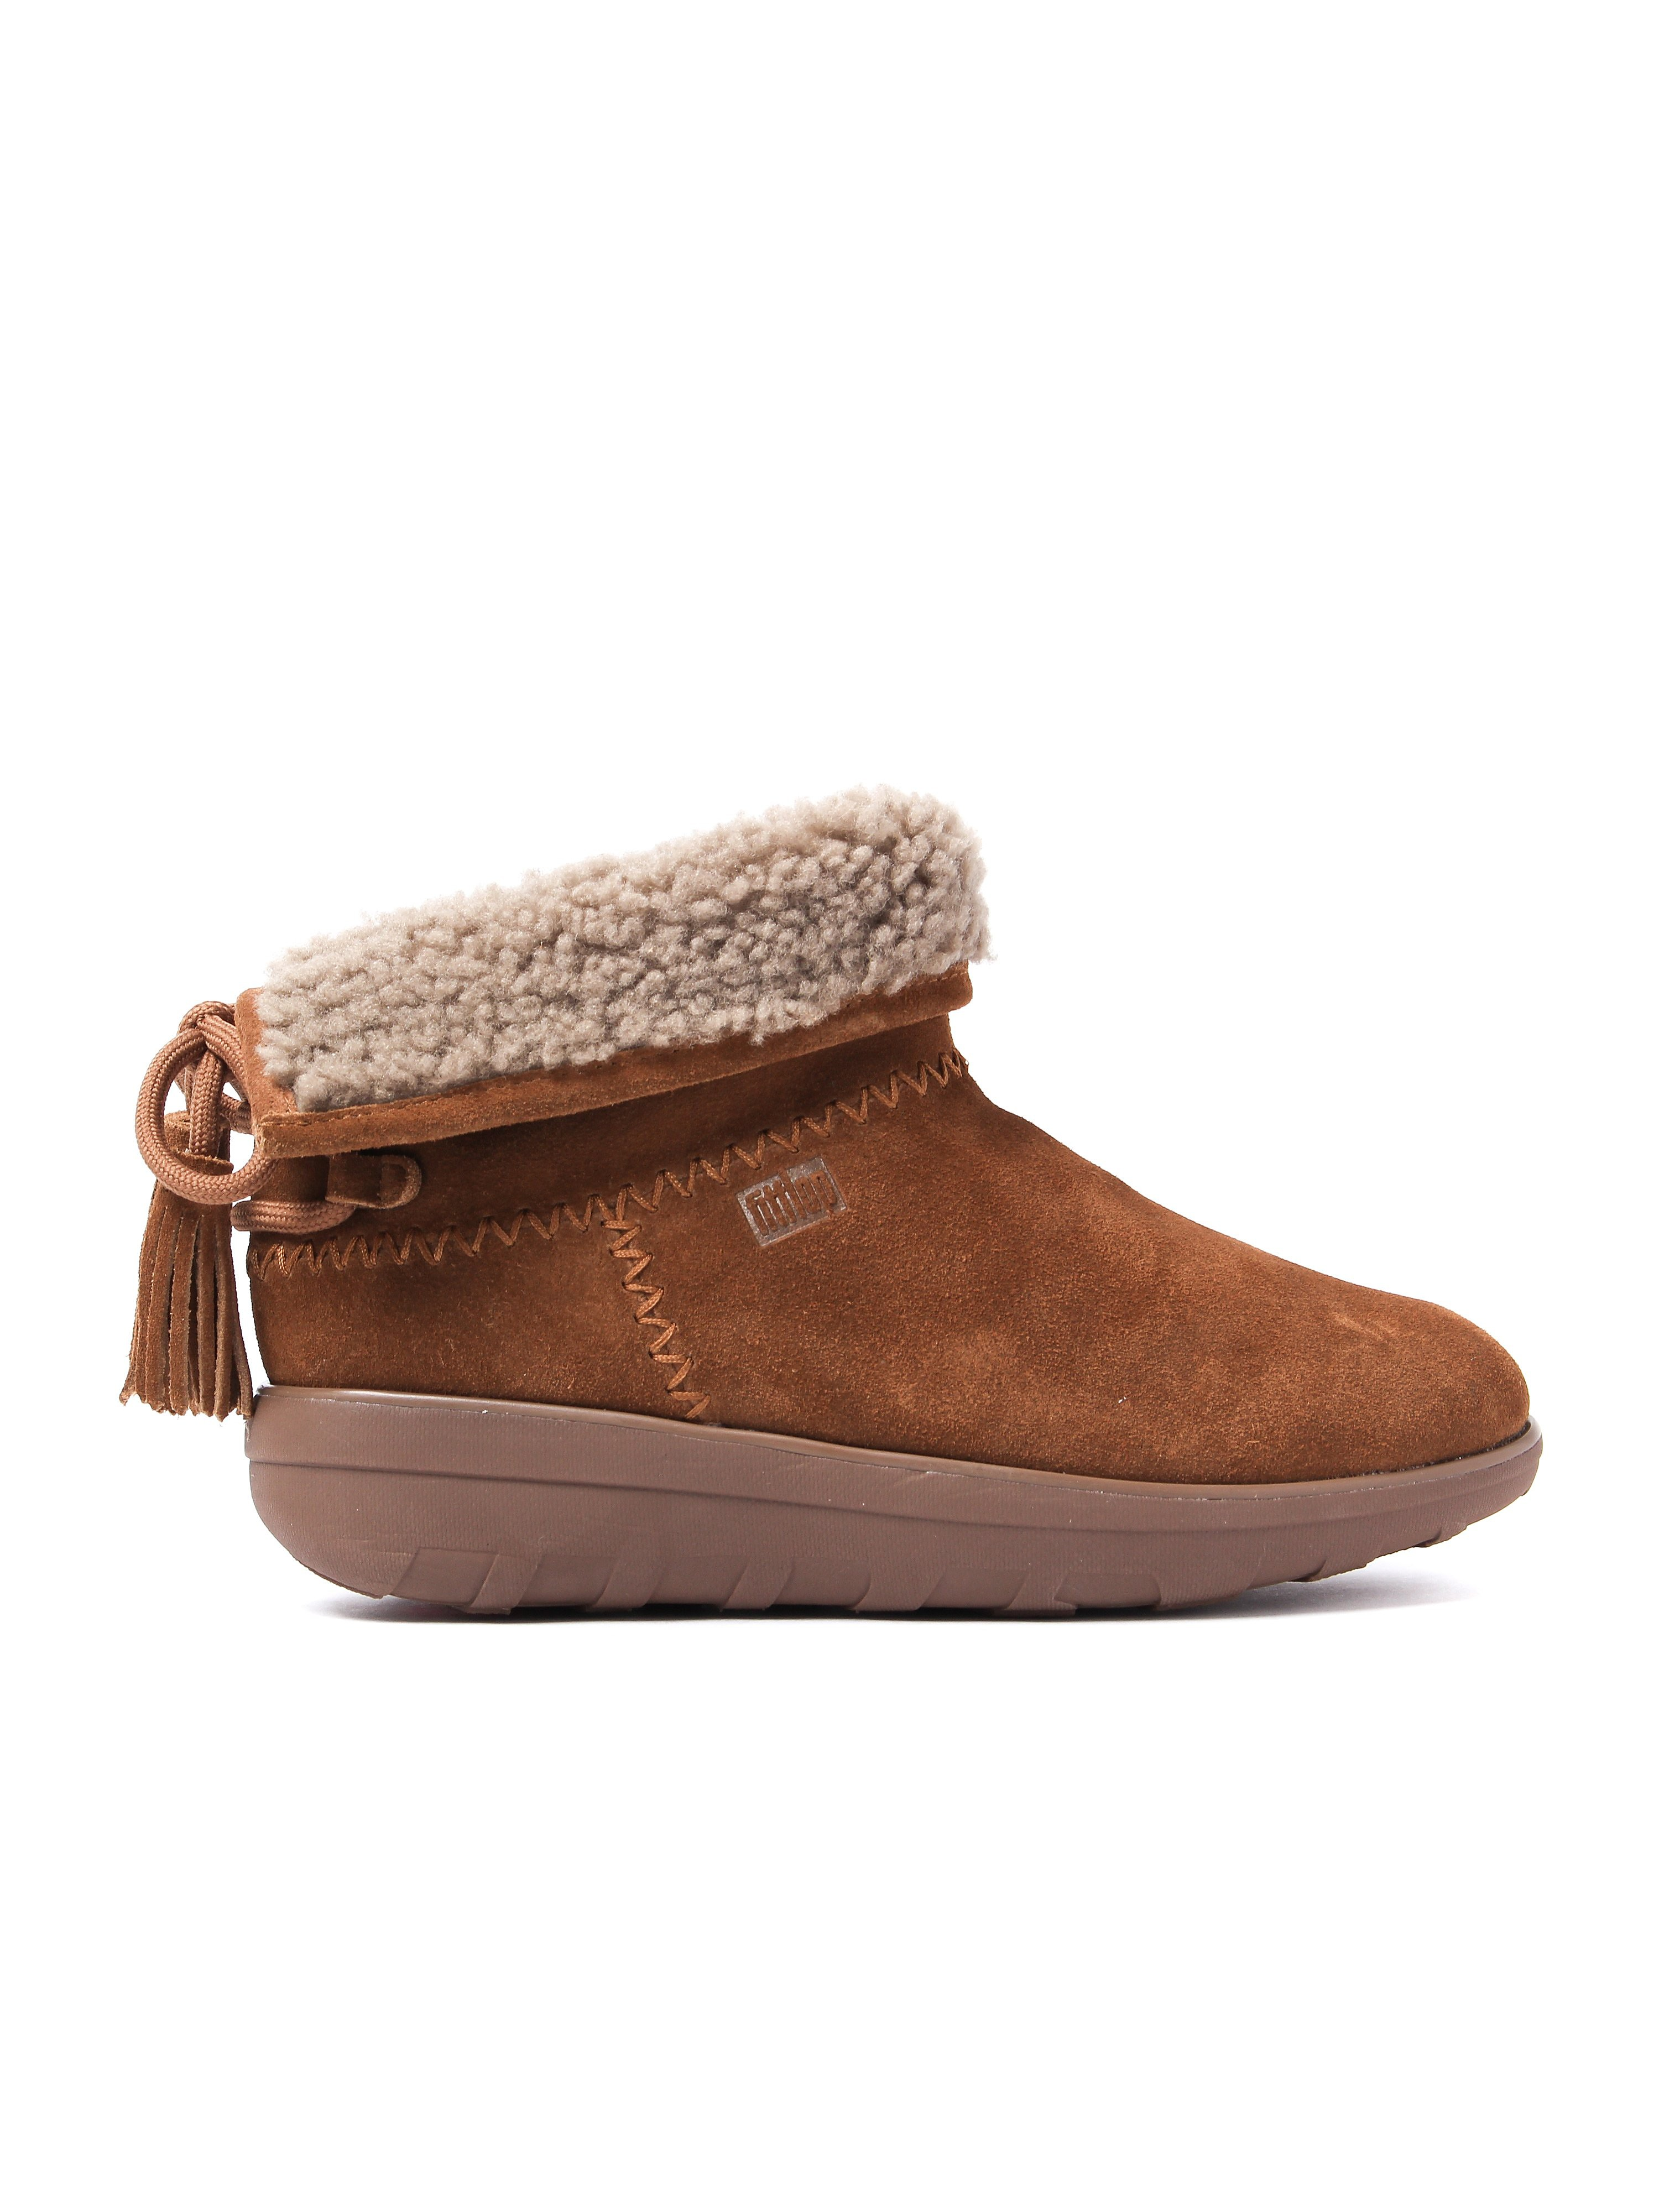 FitFlop Women's Mukluk Shorty II Boots With Tassels - Chestnut Suede